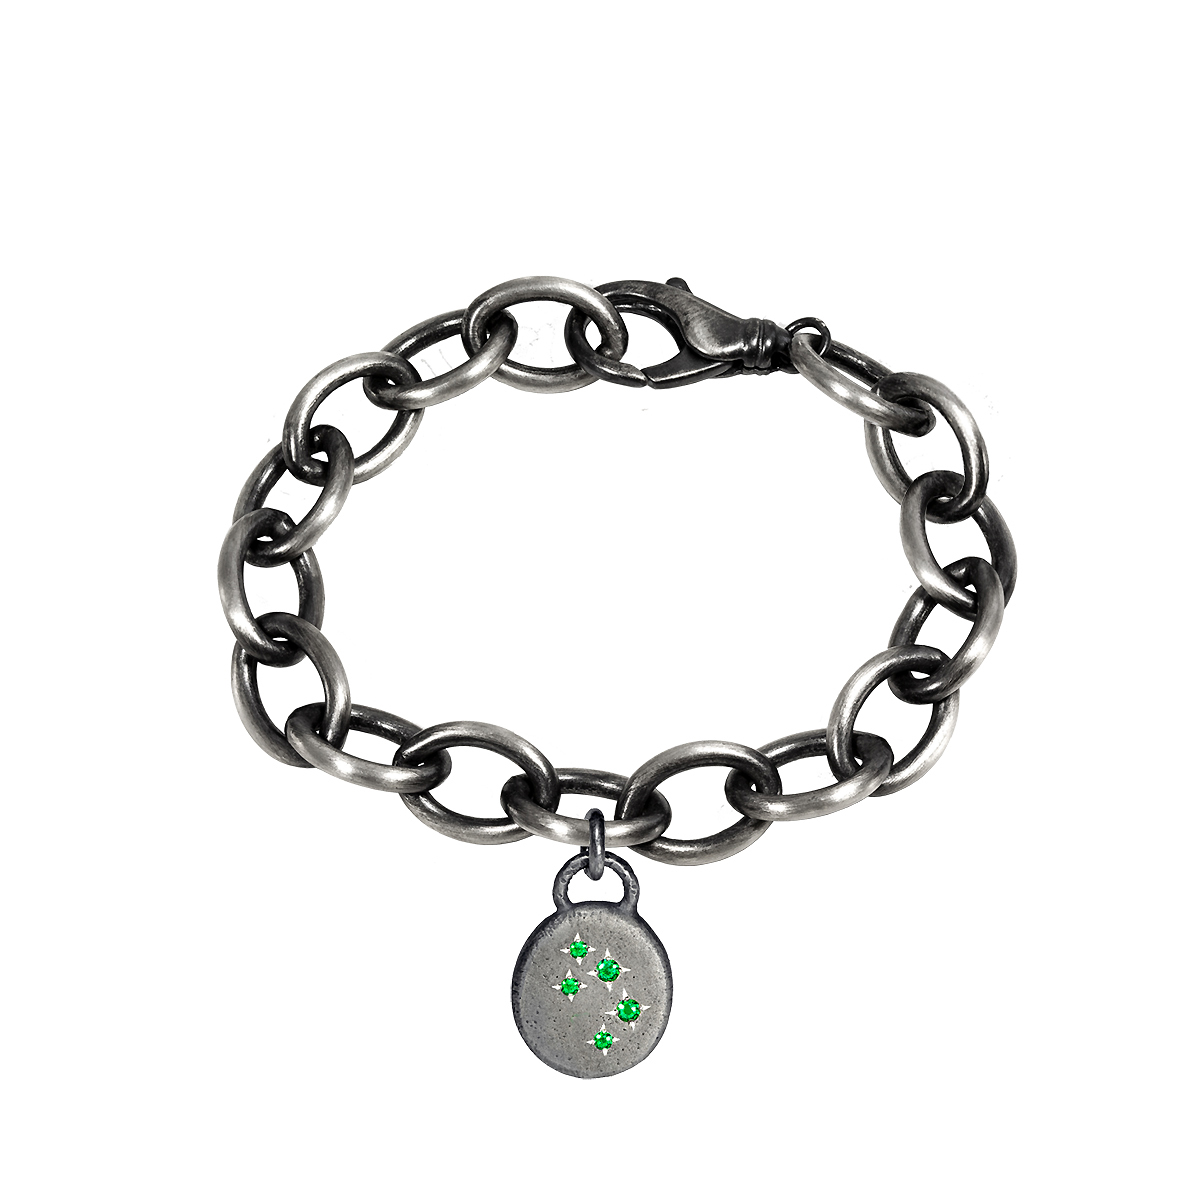 ENVY large chain bracelet